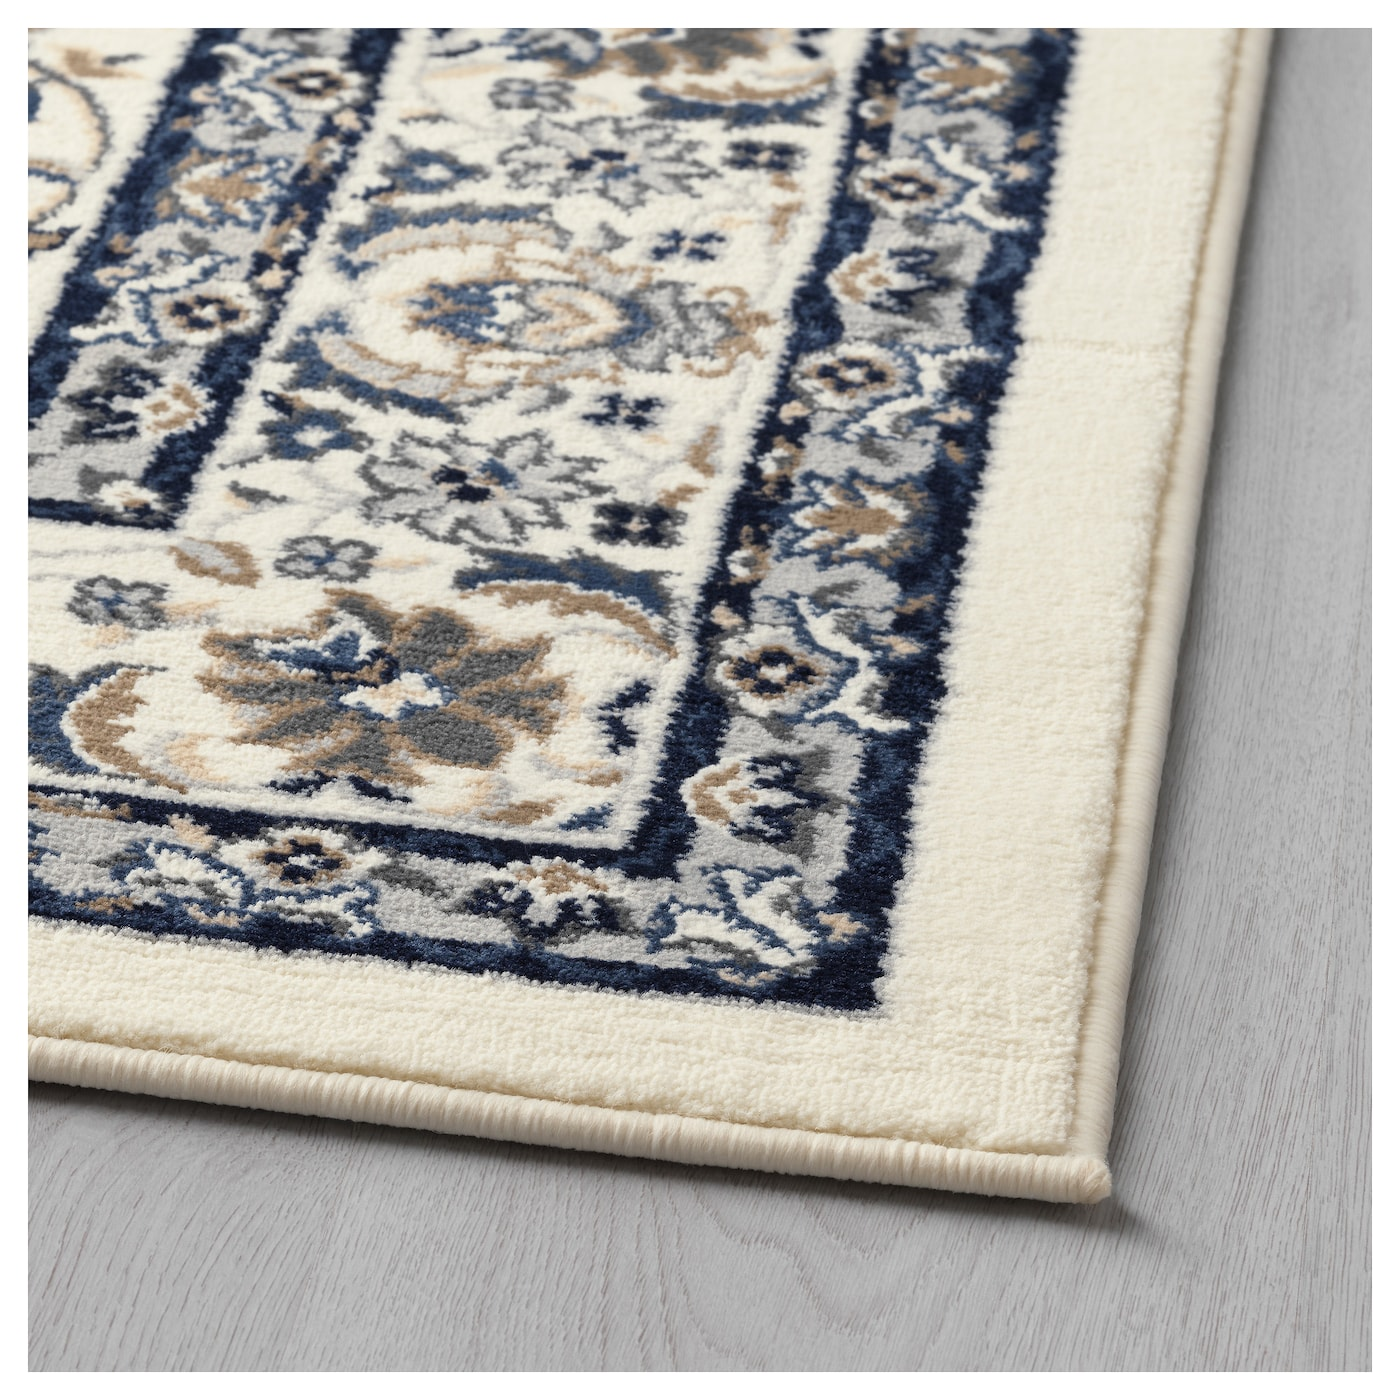 vall by tapis poils ras beige bleu 133x195 cm ikea. Black Bedroom Furniture Sets. Home Design Ideas